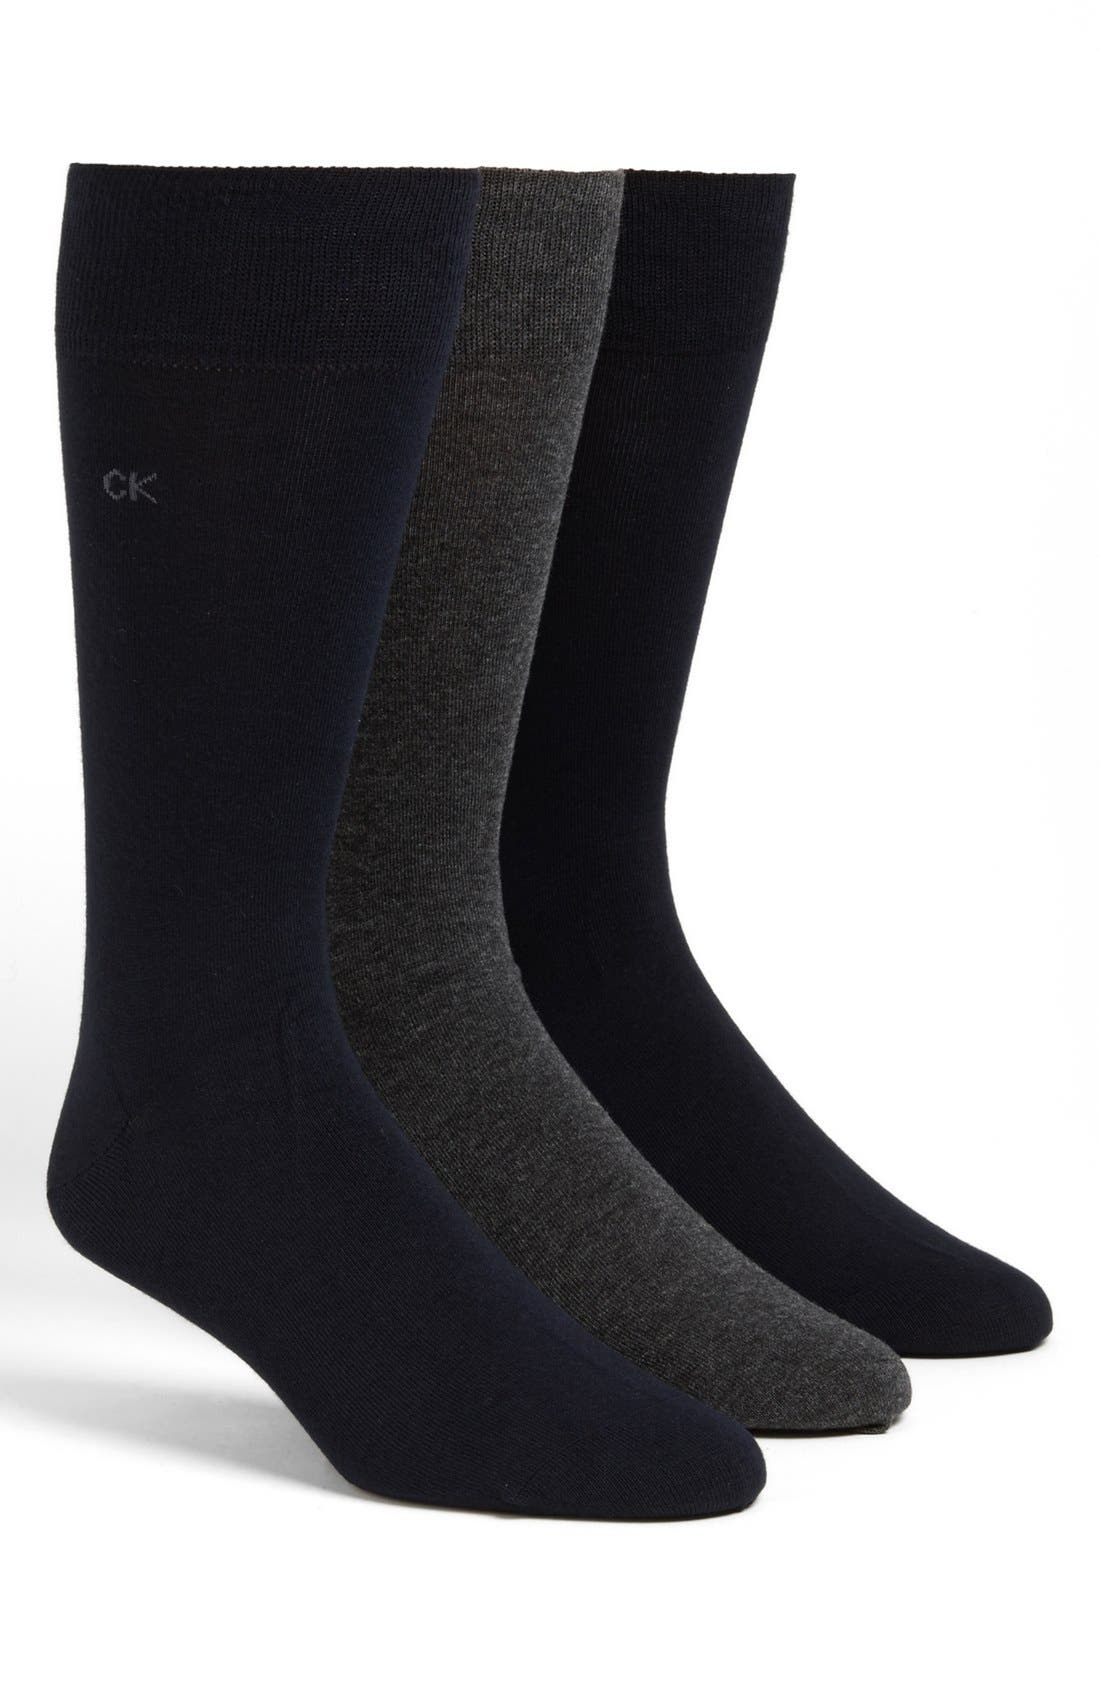 Assorted 3-Pack Socks,                             Main thumbnail 1, color,                             Assorted Blue